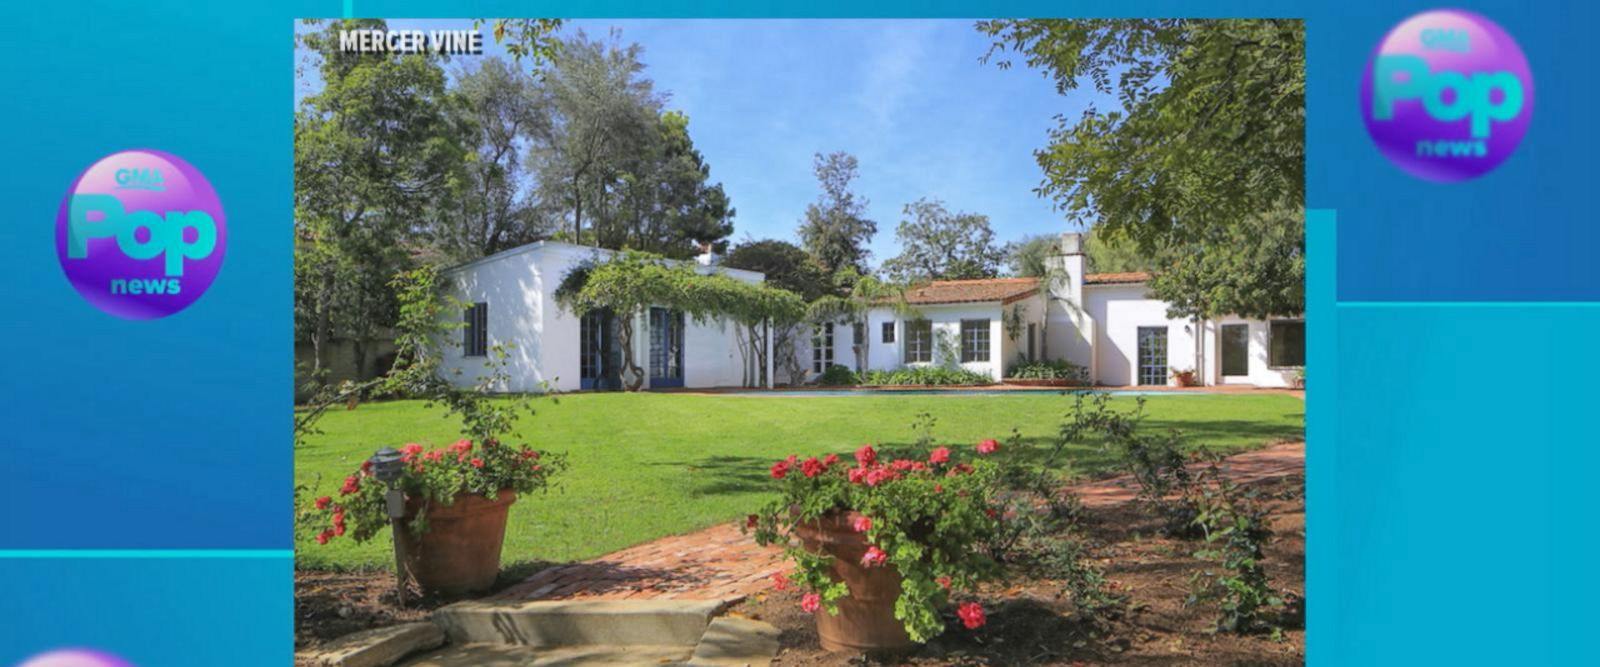 VIDEO: Marilyn Monroe's former home for sale for $6.9M